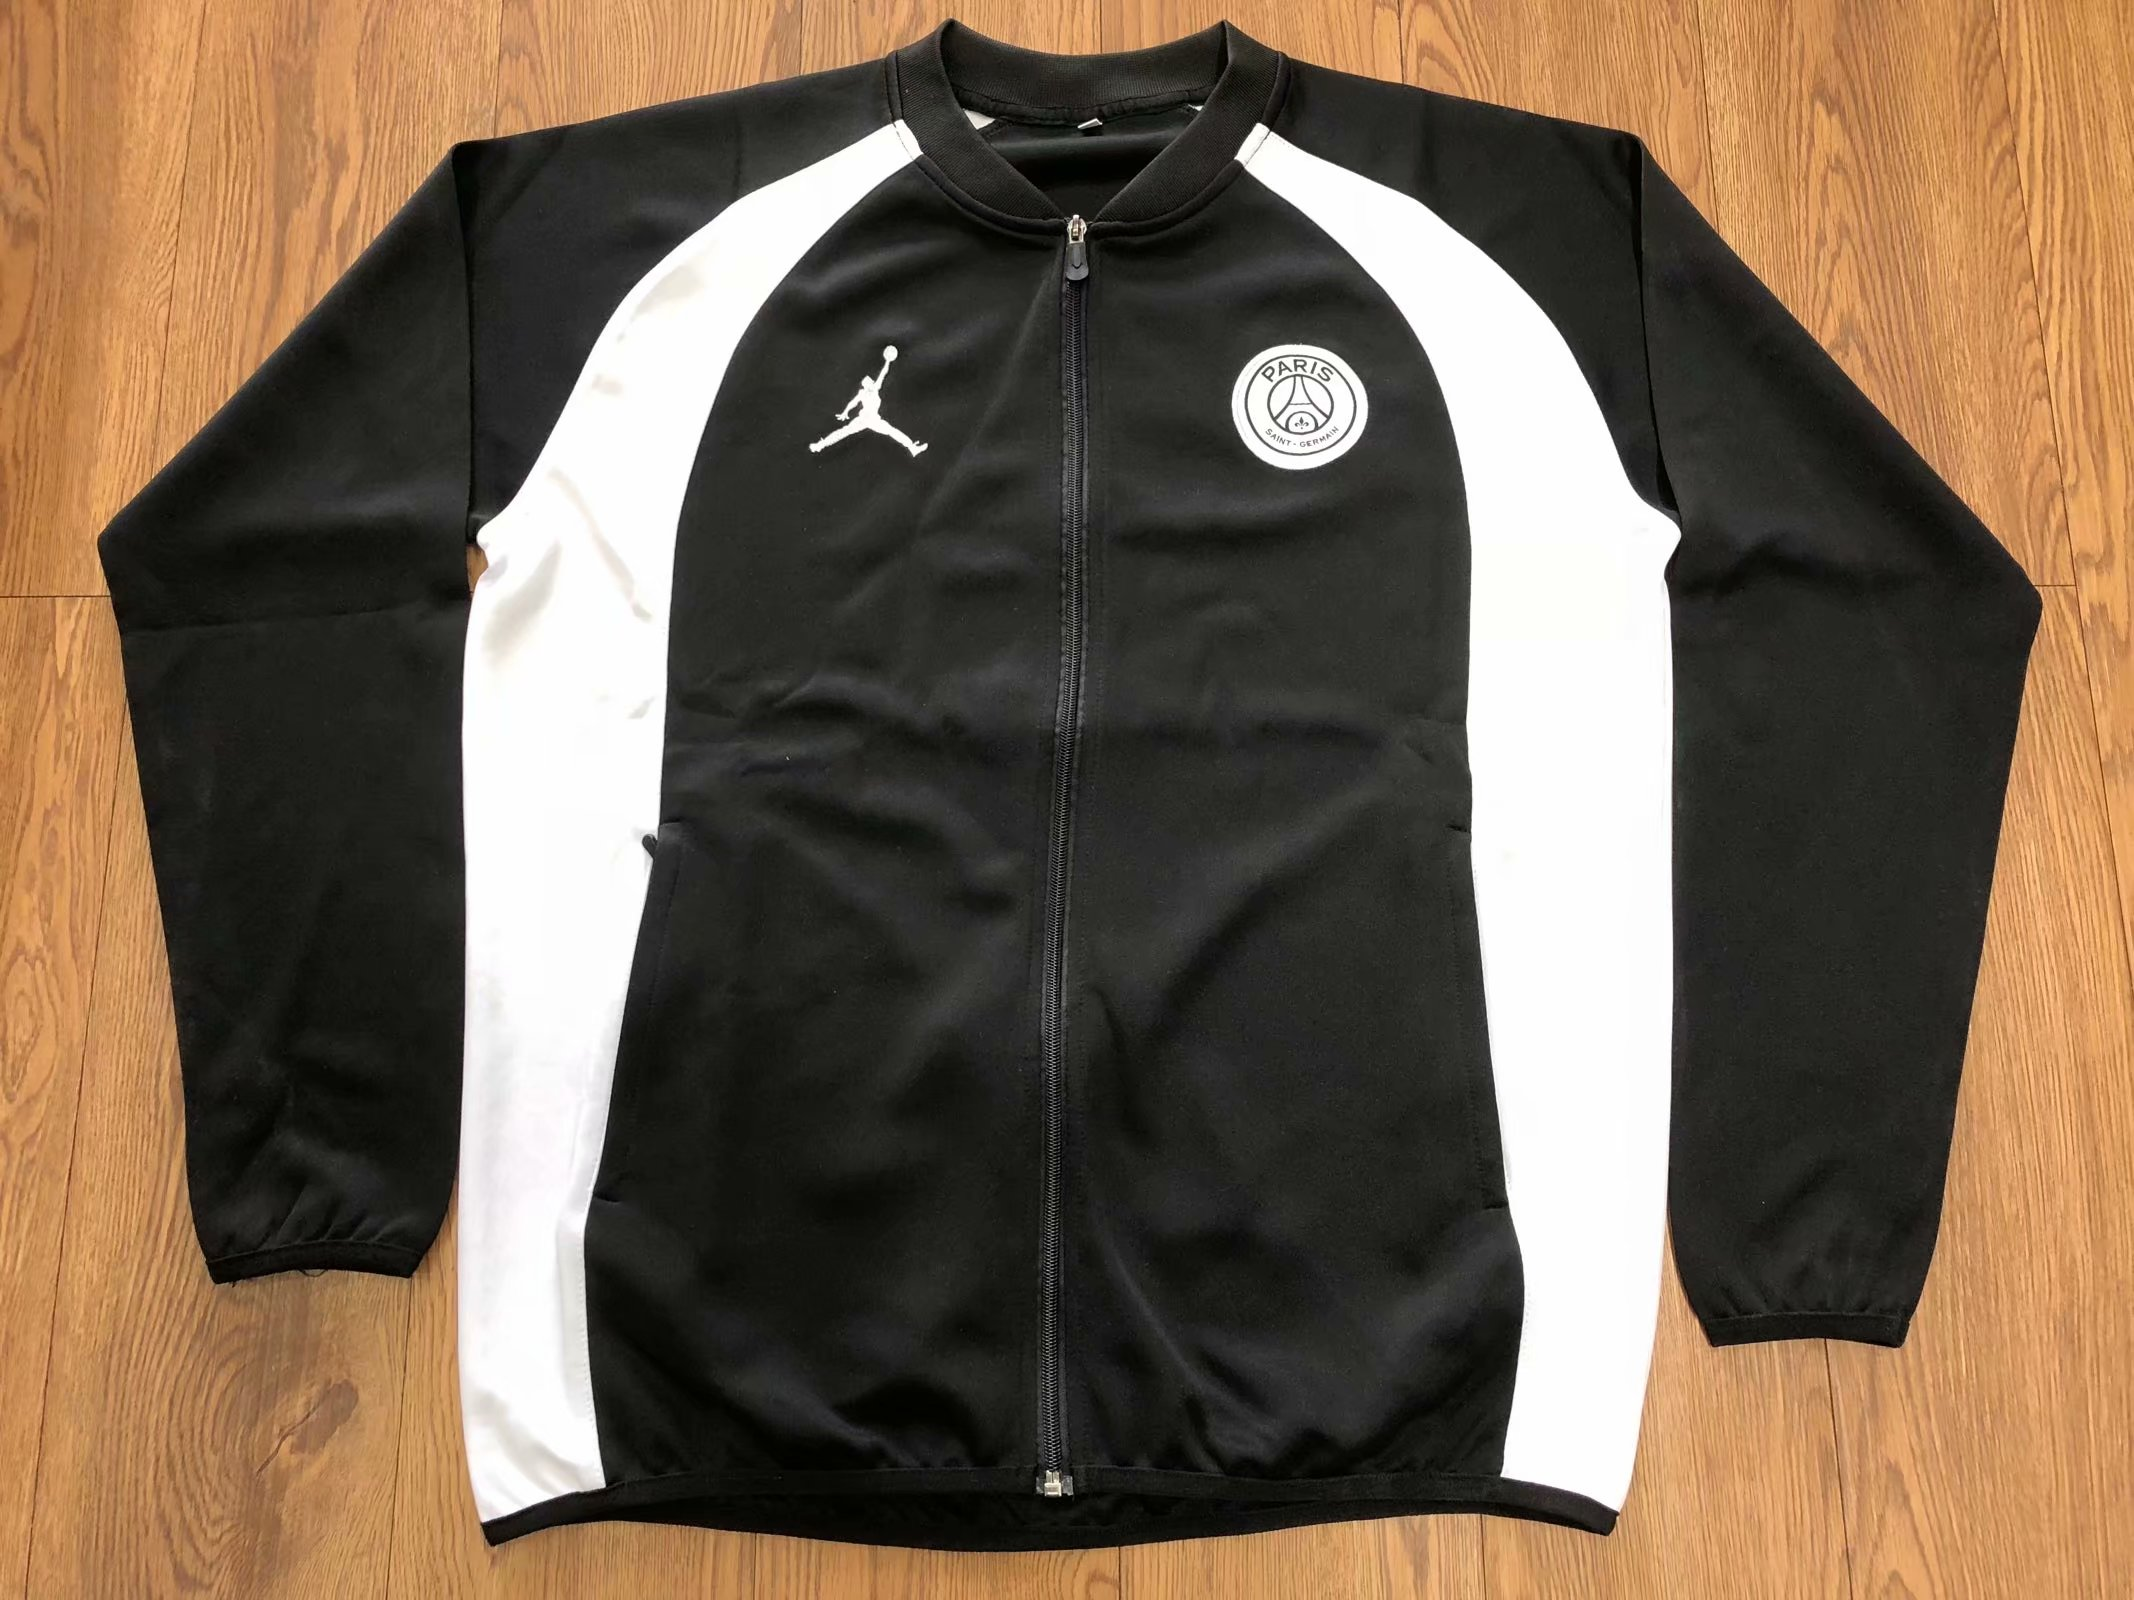 e96290ea6b6f US  26.8 - PSG JORDAN Flight Knit 18 19 Jacket - www.fcsoccerworld.com